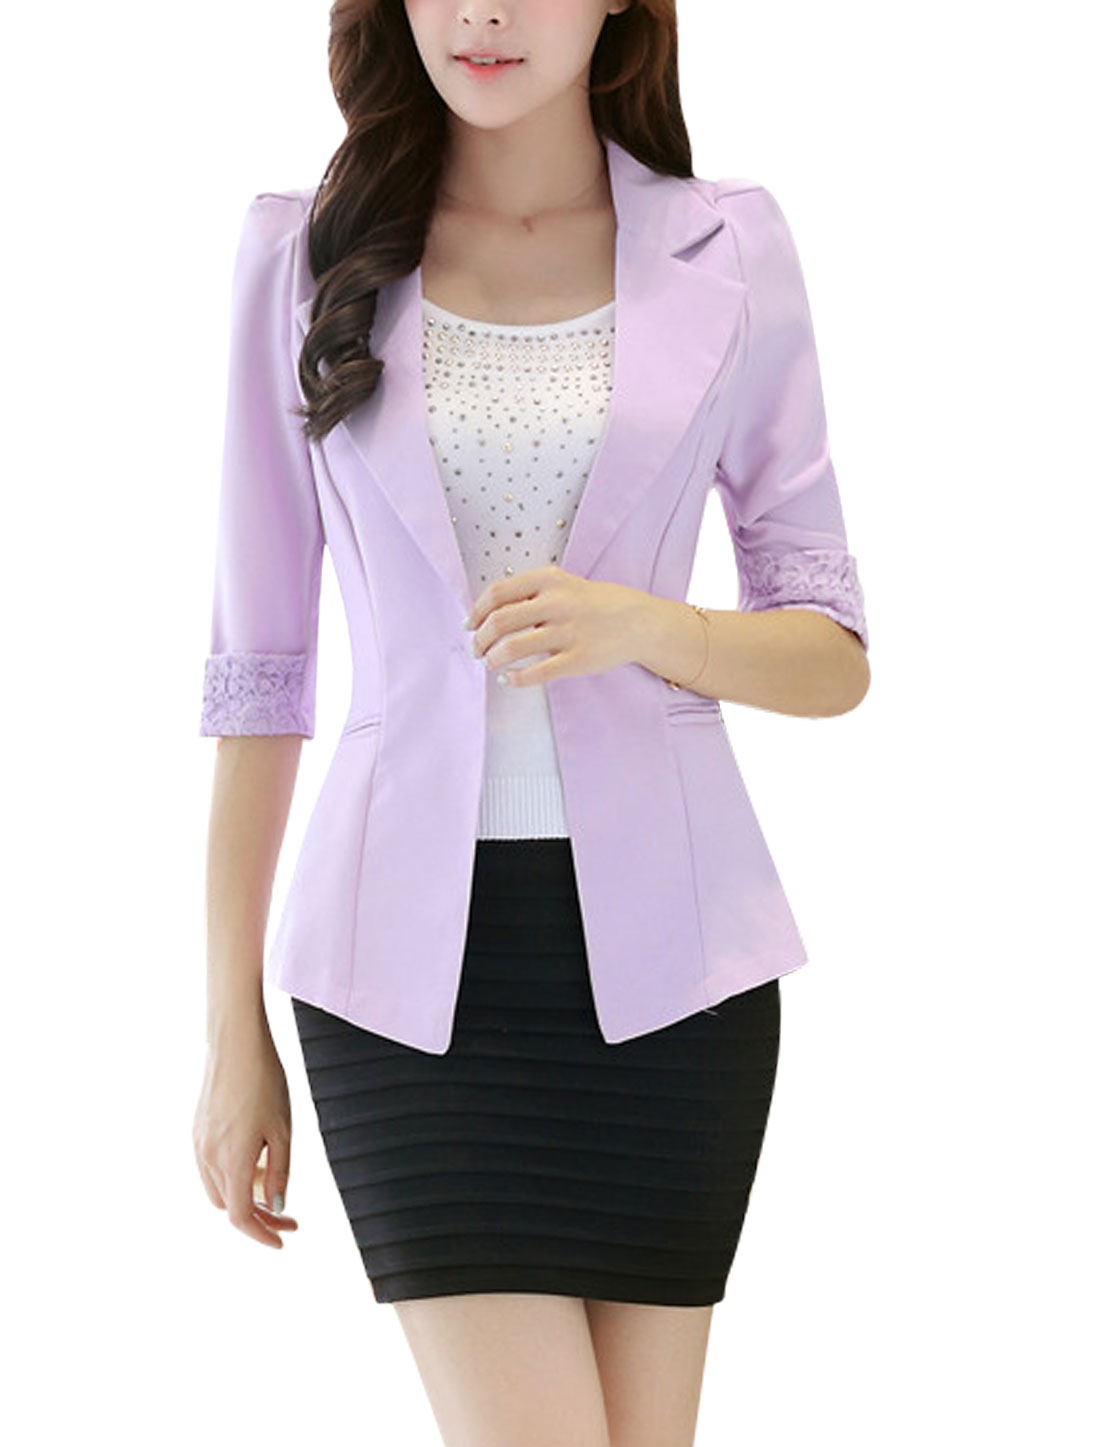 Lady 1/2 Sleeves Panel Design Slim Fit Violet Blazer Jacket M